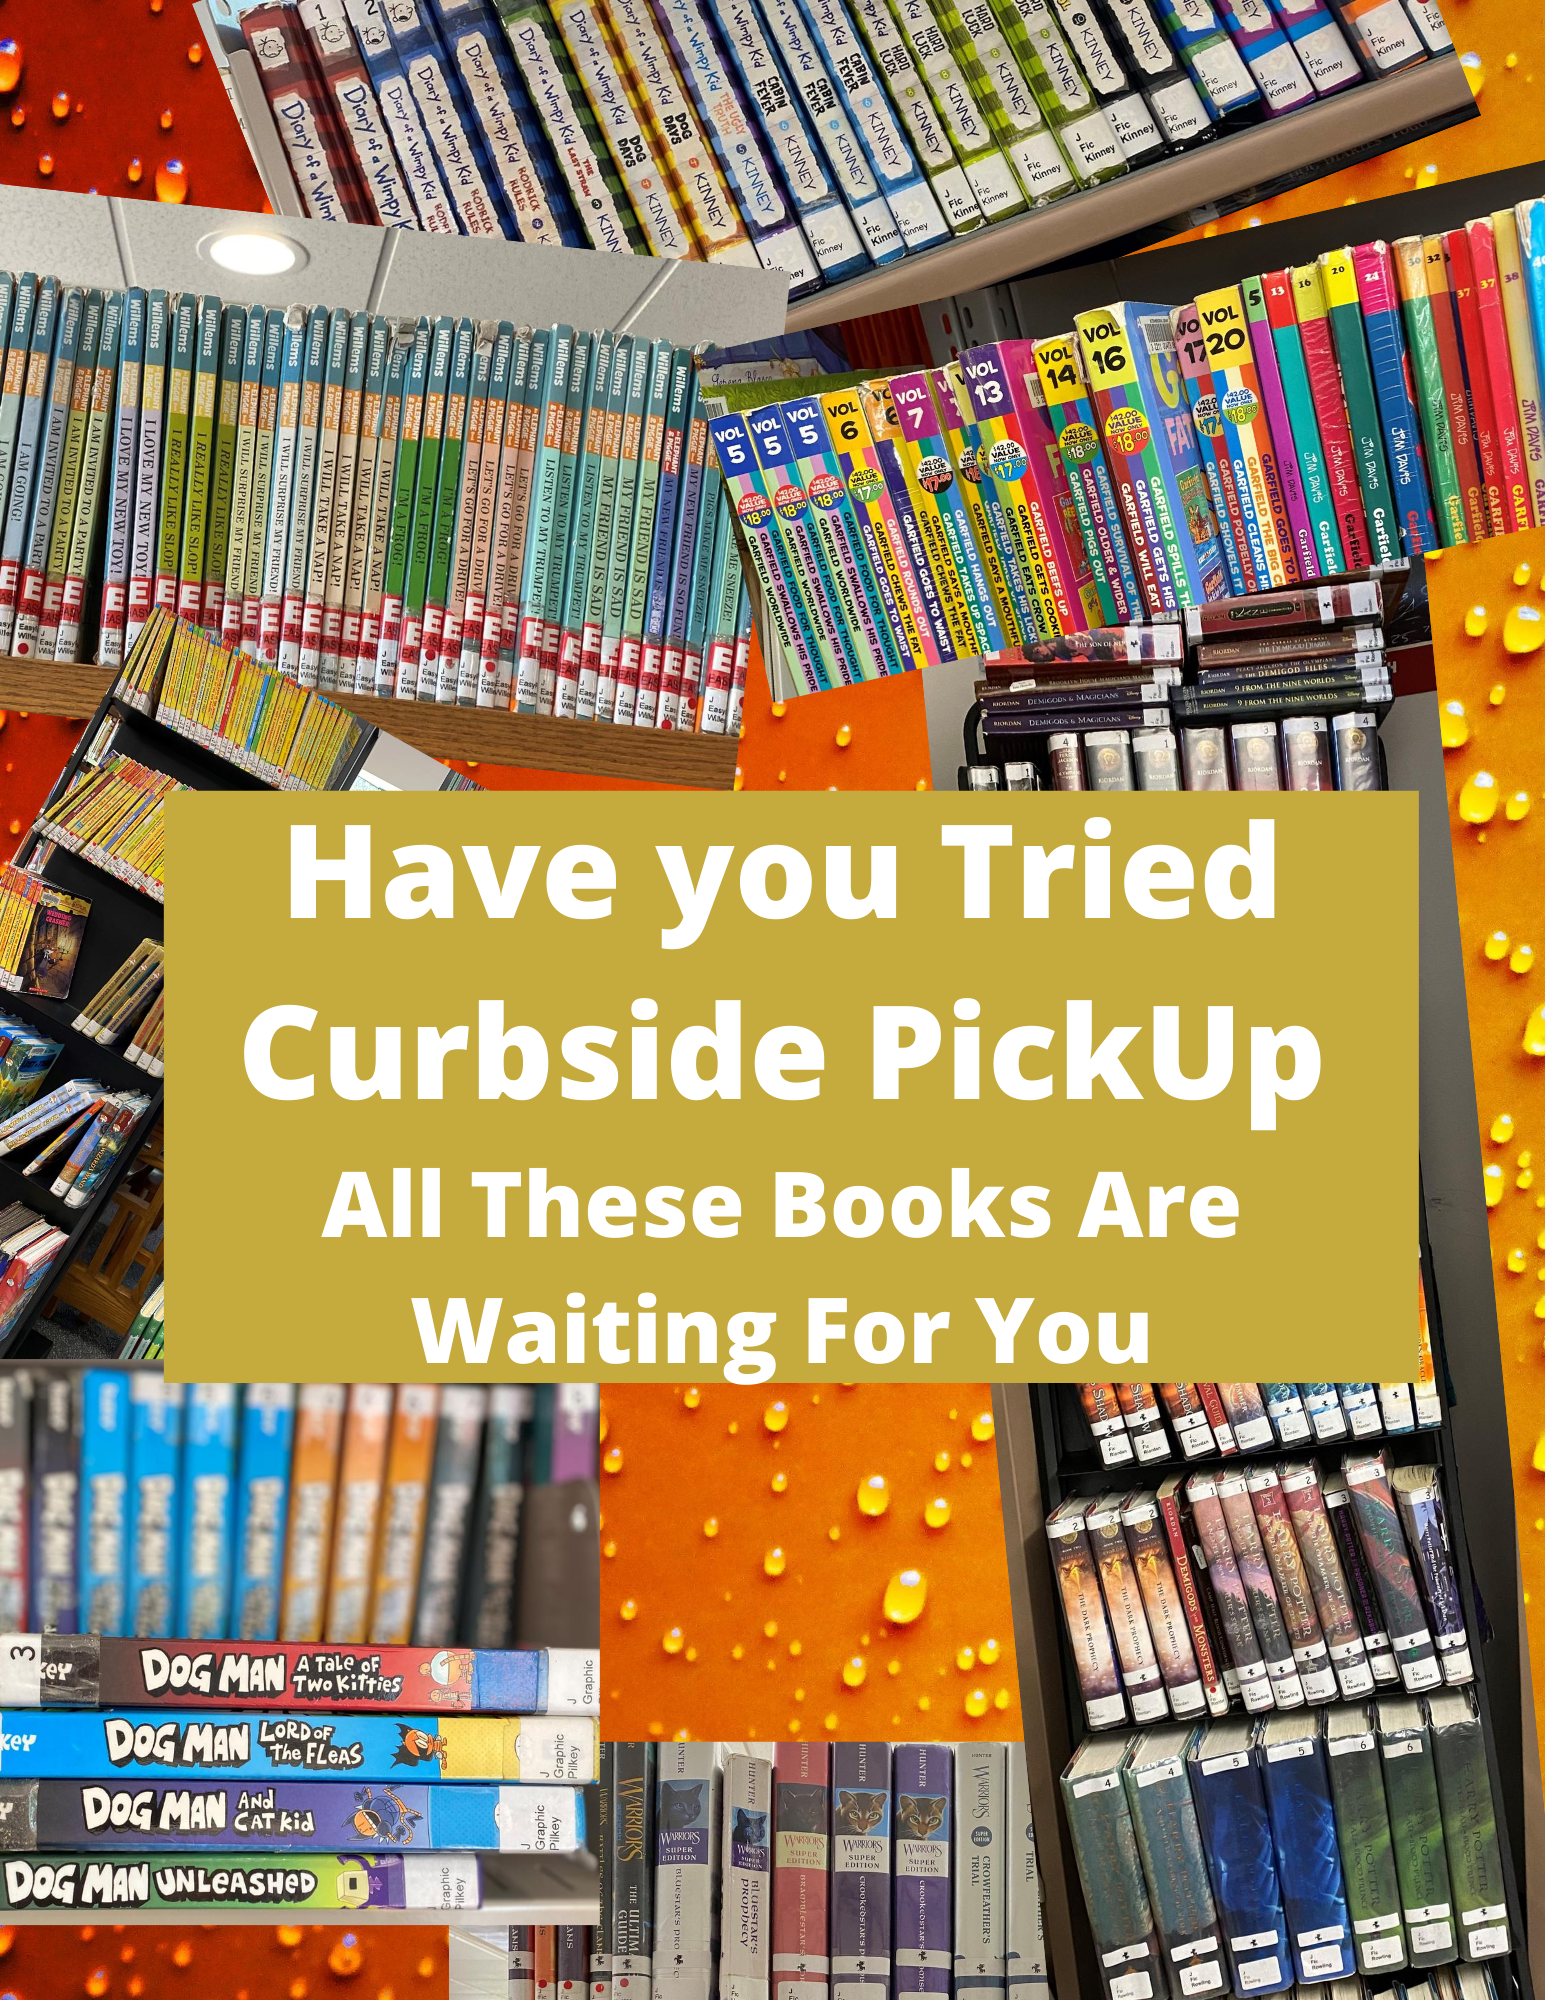 Curbside Pickup more information in text to the right